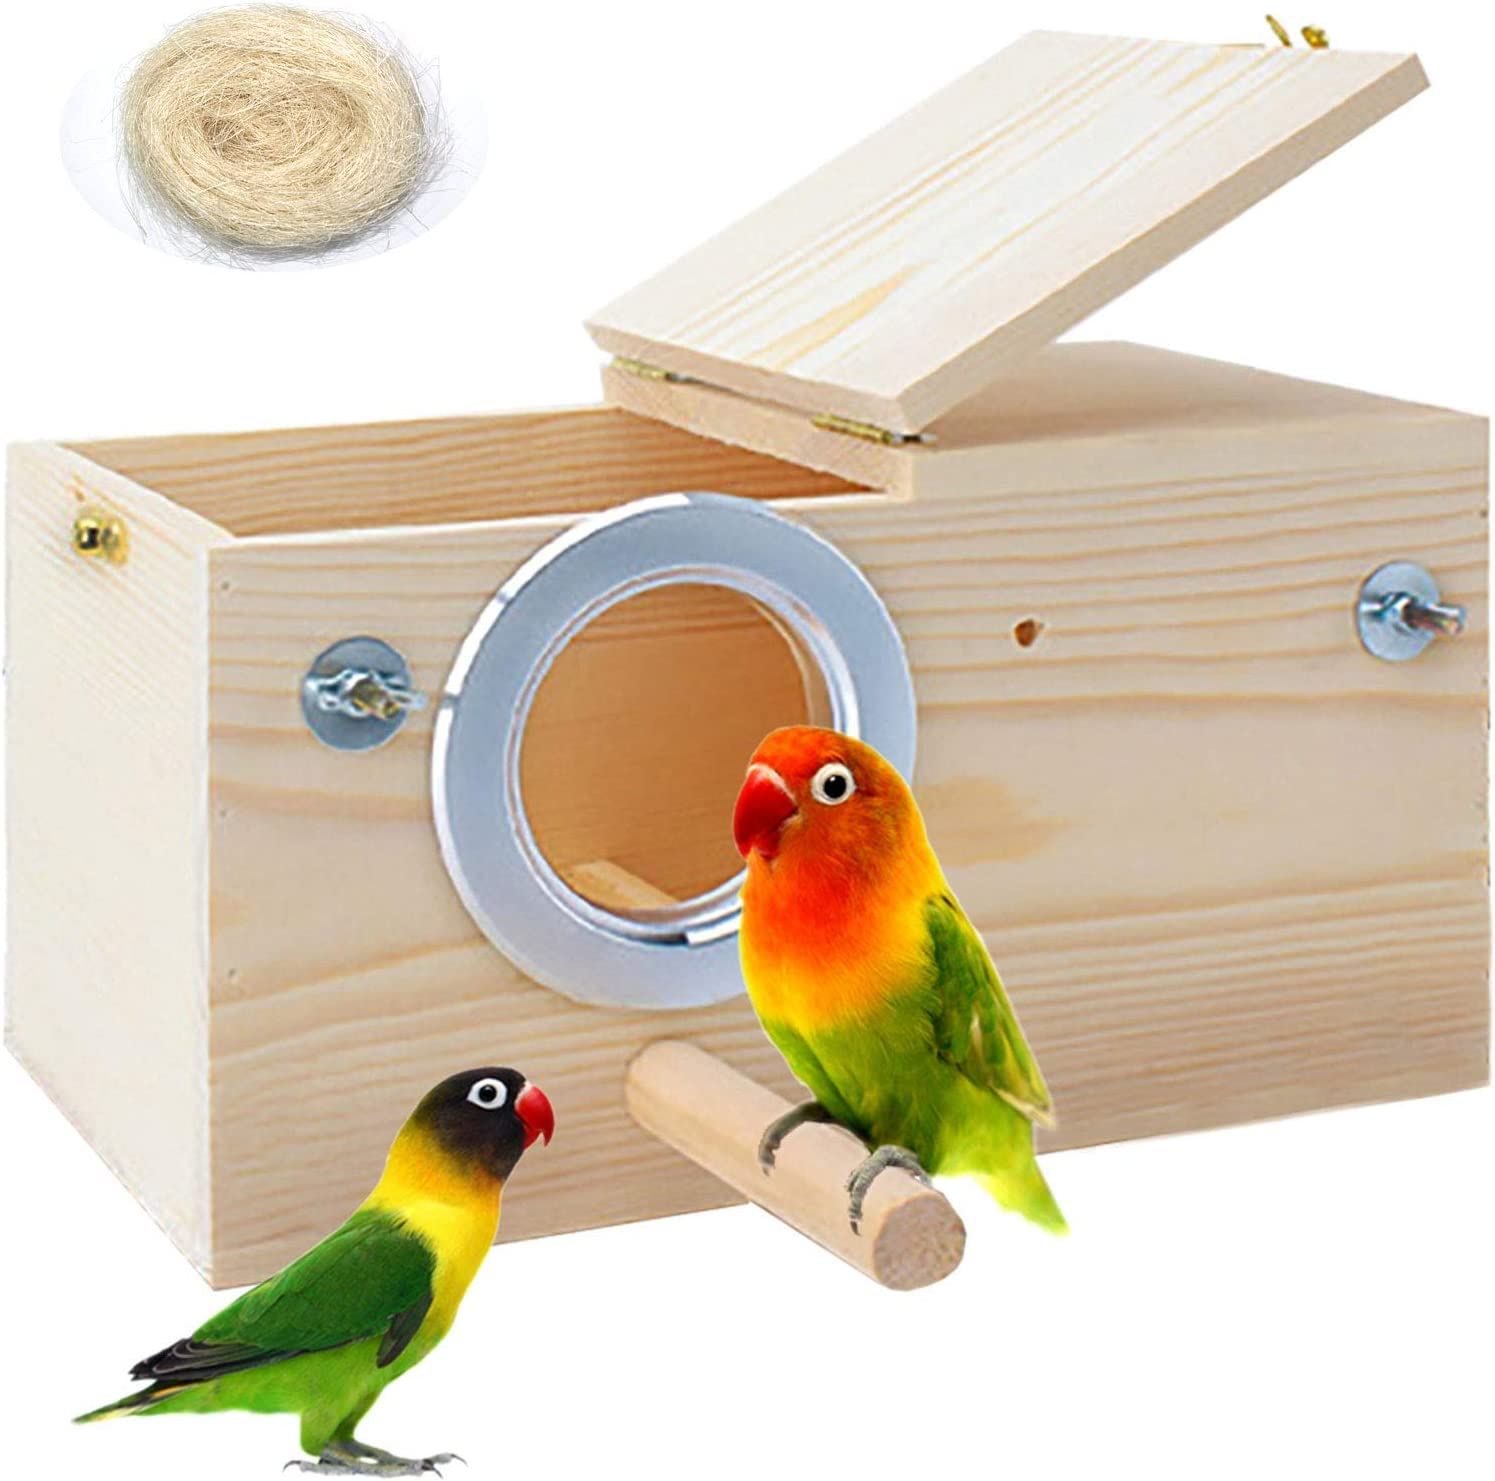 PINVNBY Parakeet Nesting Box Bird House Wood Breeding Box Parrots Mating Box for Lovebirds,Cockatoo,Budgie, Finch,Canary and Medium-Sized Birds